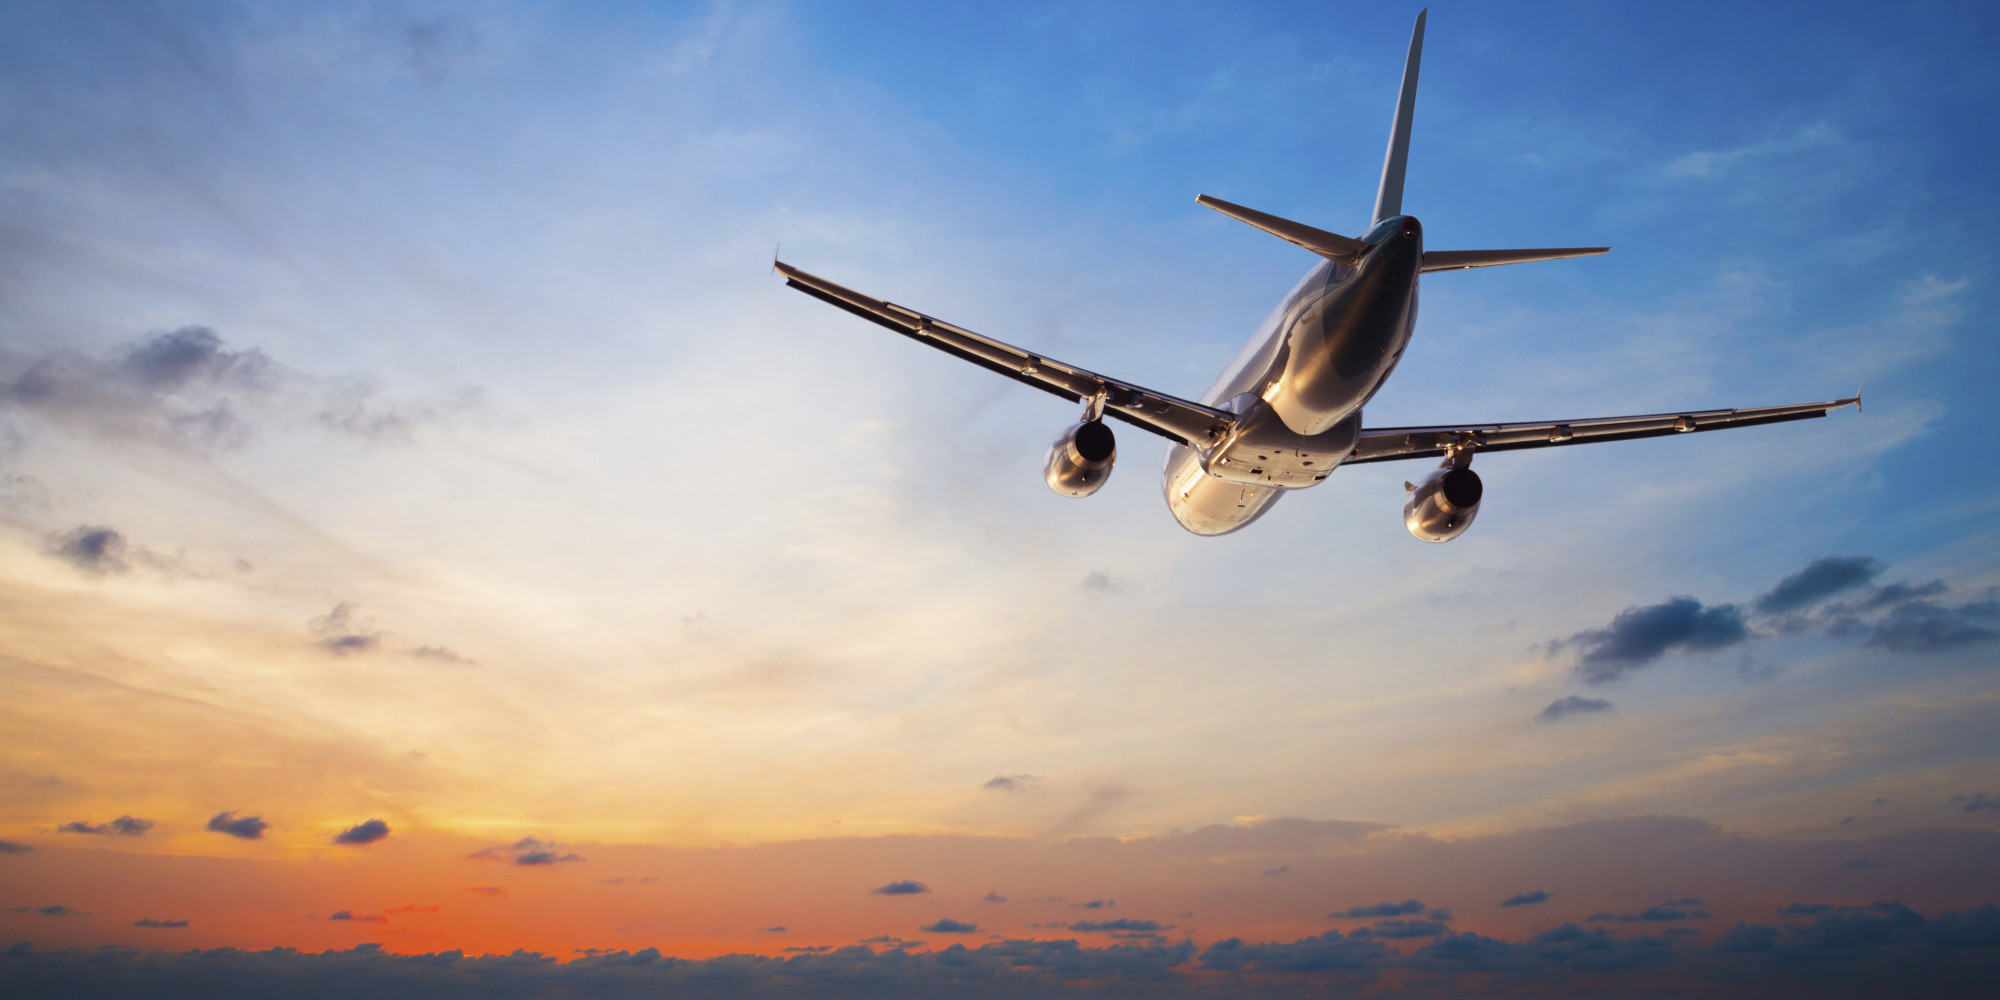 6 Must Have Accessories for Any Business/Plane Trip | HuffPost